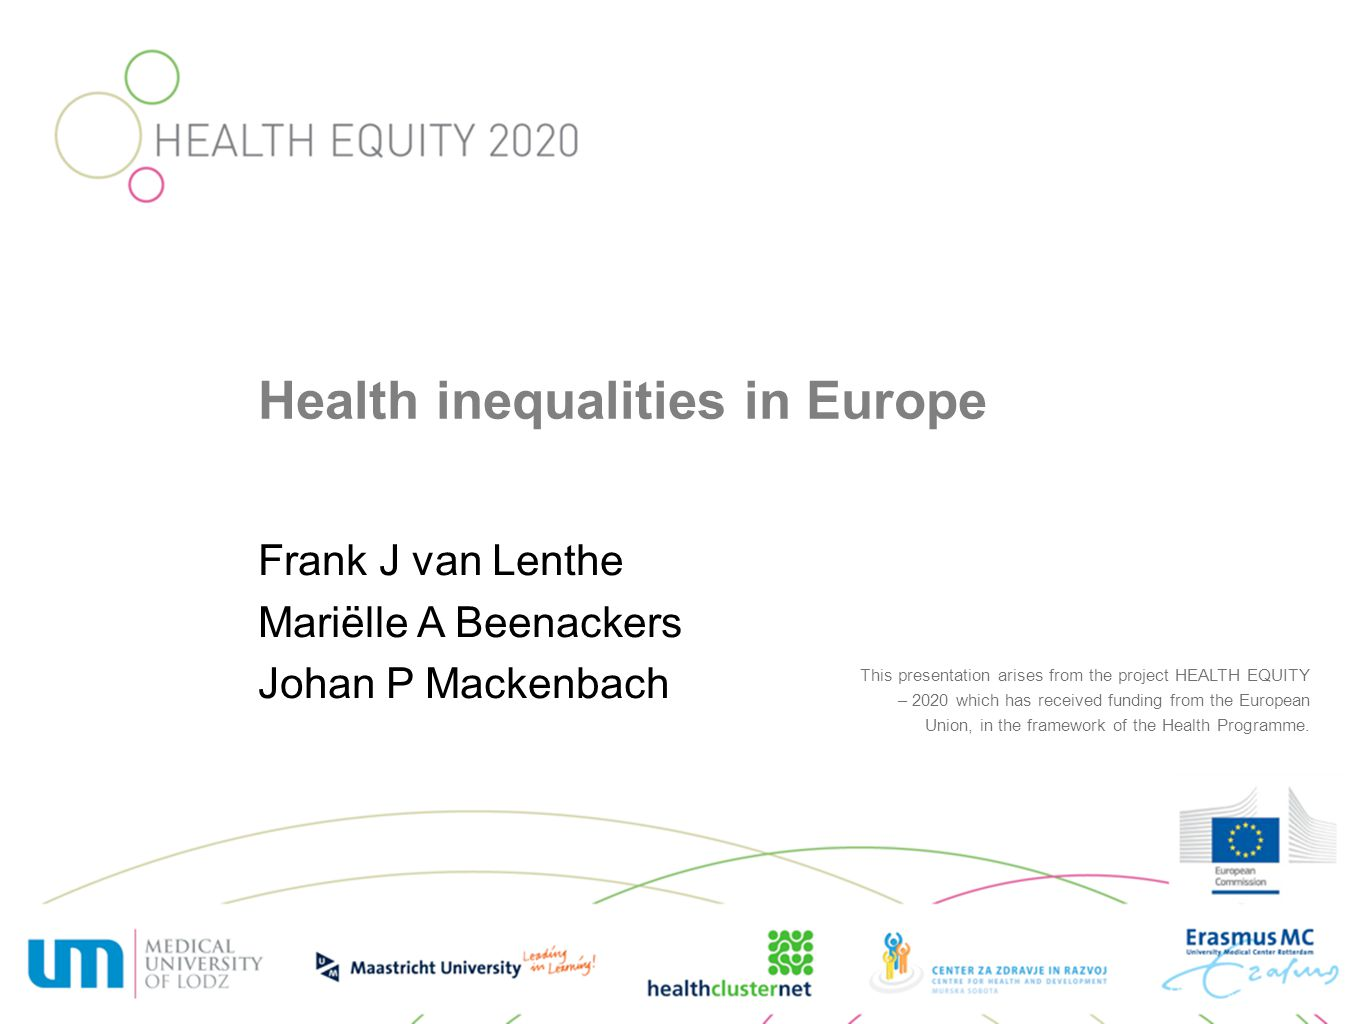 WP 4: TRANSLATIONAL EVIDENCE AND POLICY Aim: develop tools for drawing up evidence-based regional action plans to reduce health inequalities: –a case-by-case needs assessment, taking into account current exposure to the determinants of health inequalities and to policies tackling these determinants, –selection of actions known or expected to be effective in addressing these entry-points, and –a case-by-case analysis of the potential impact of these actions on population health and economic performance.